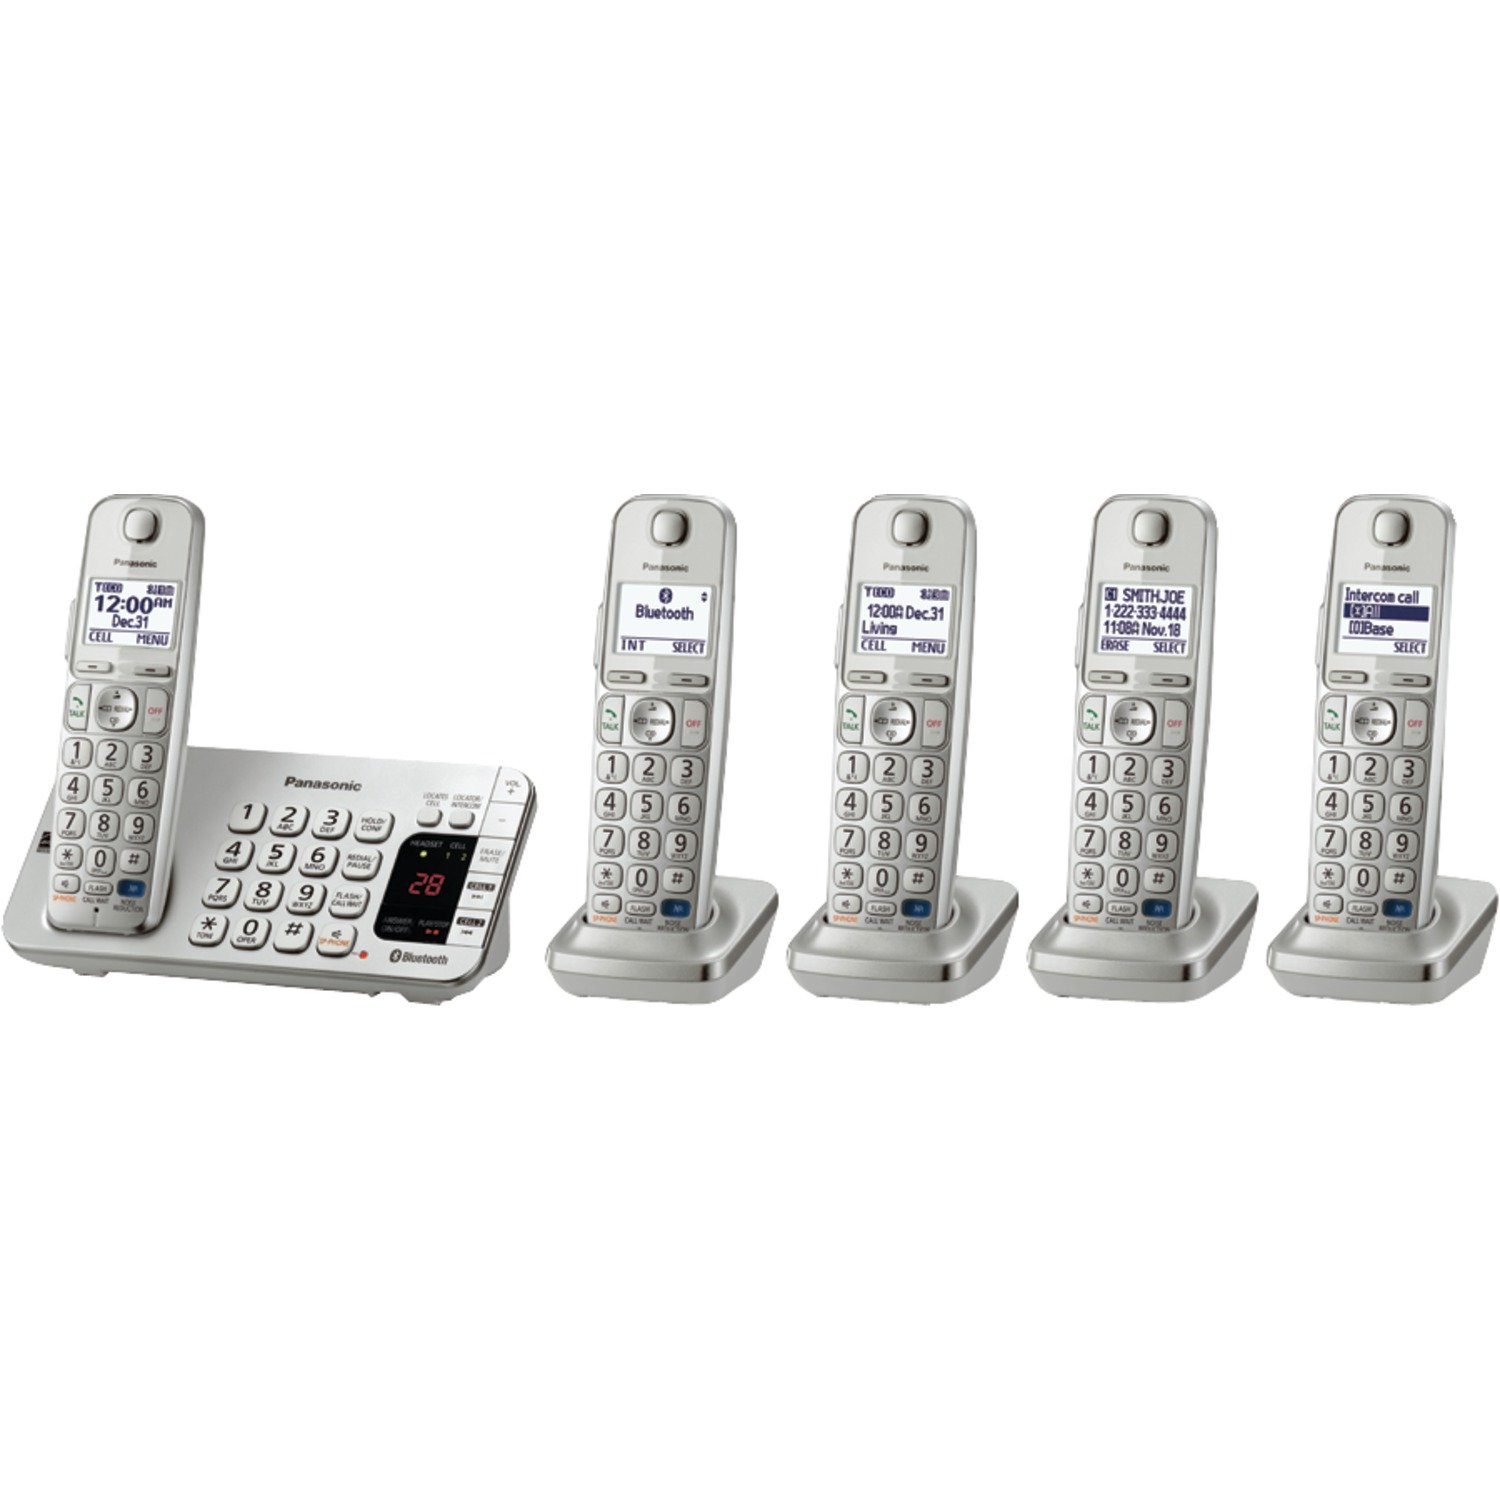 Panasonic Link2Cell Bluetooth (KX-TGE275S) 5 Handsets - Cordless Phone with Large Keypad, Silver